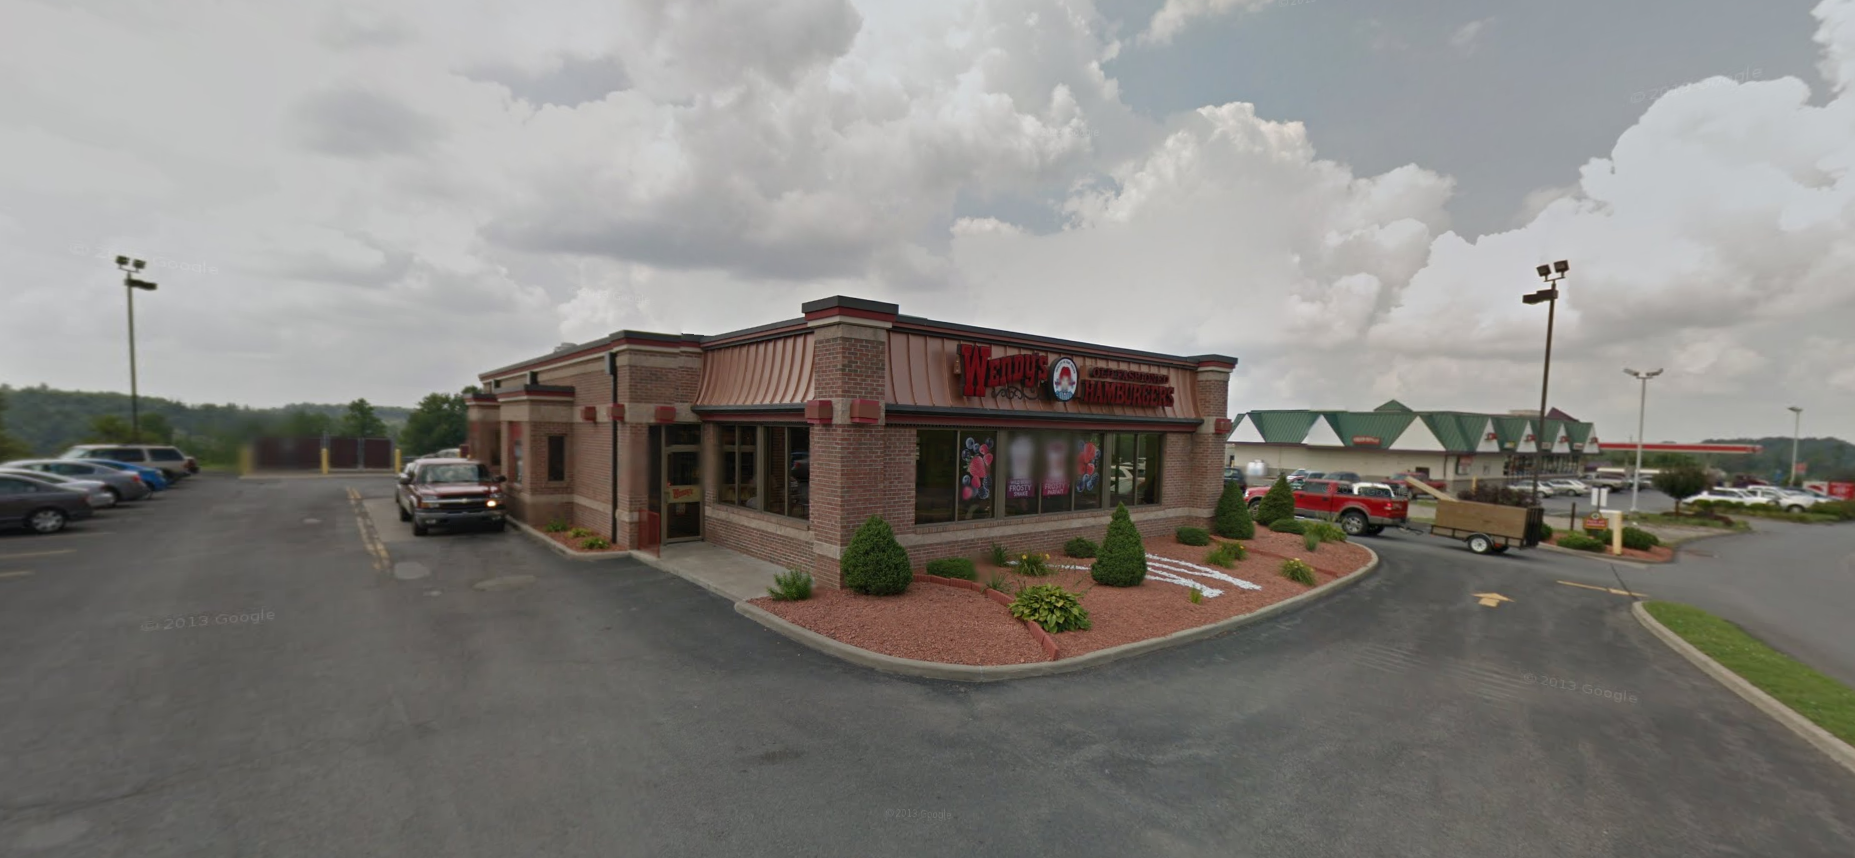 Wendy's Restaurant, West Virginia